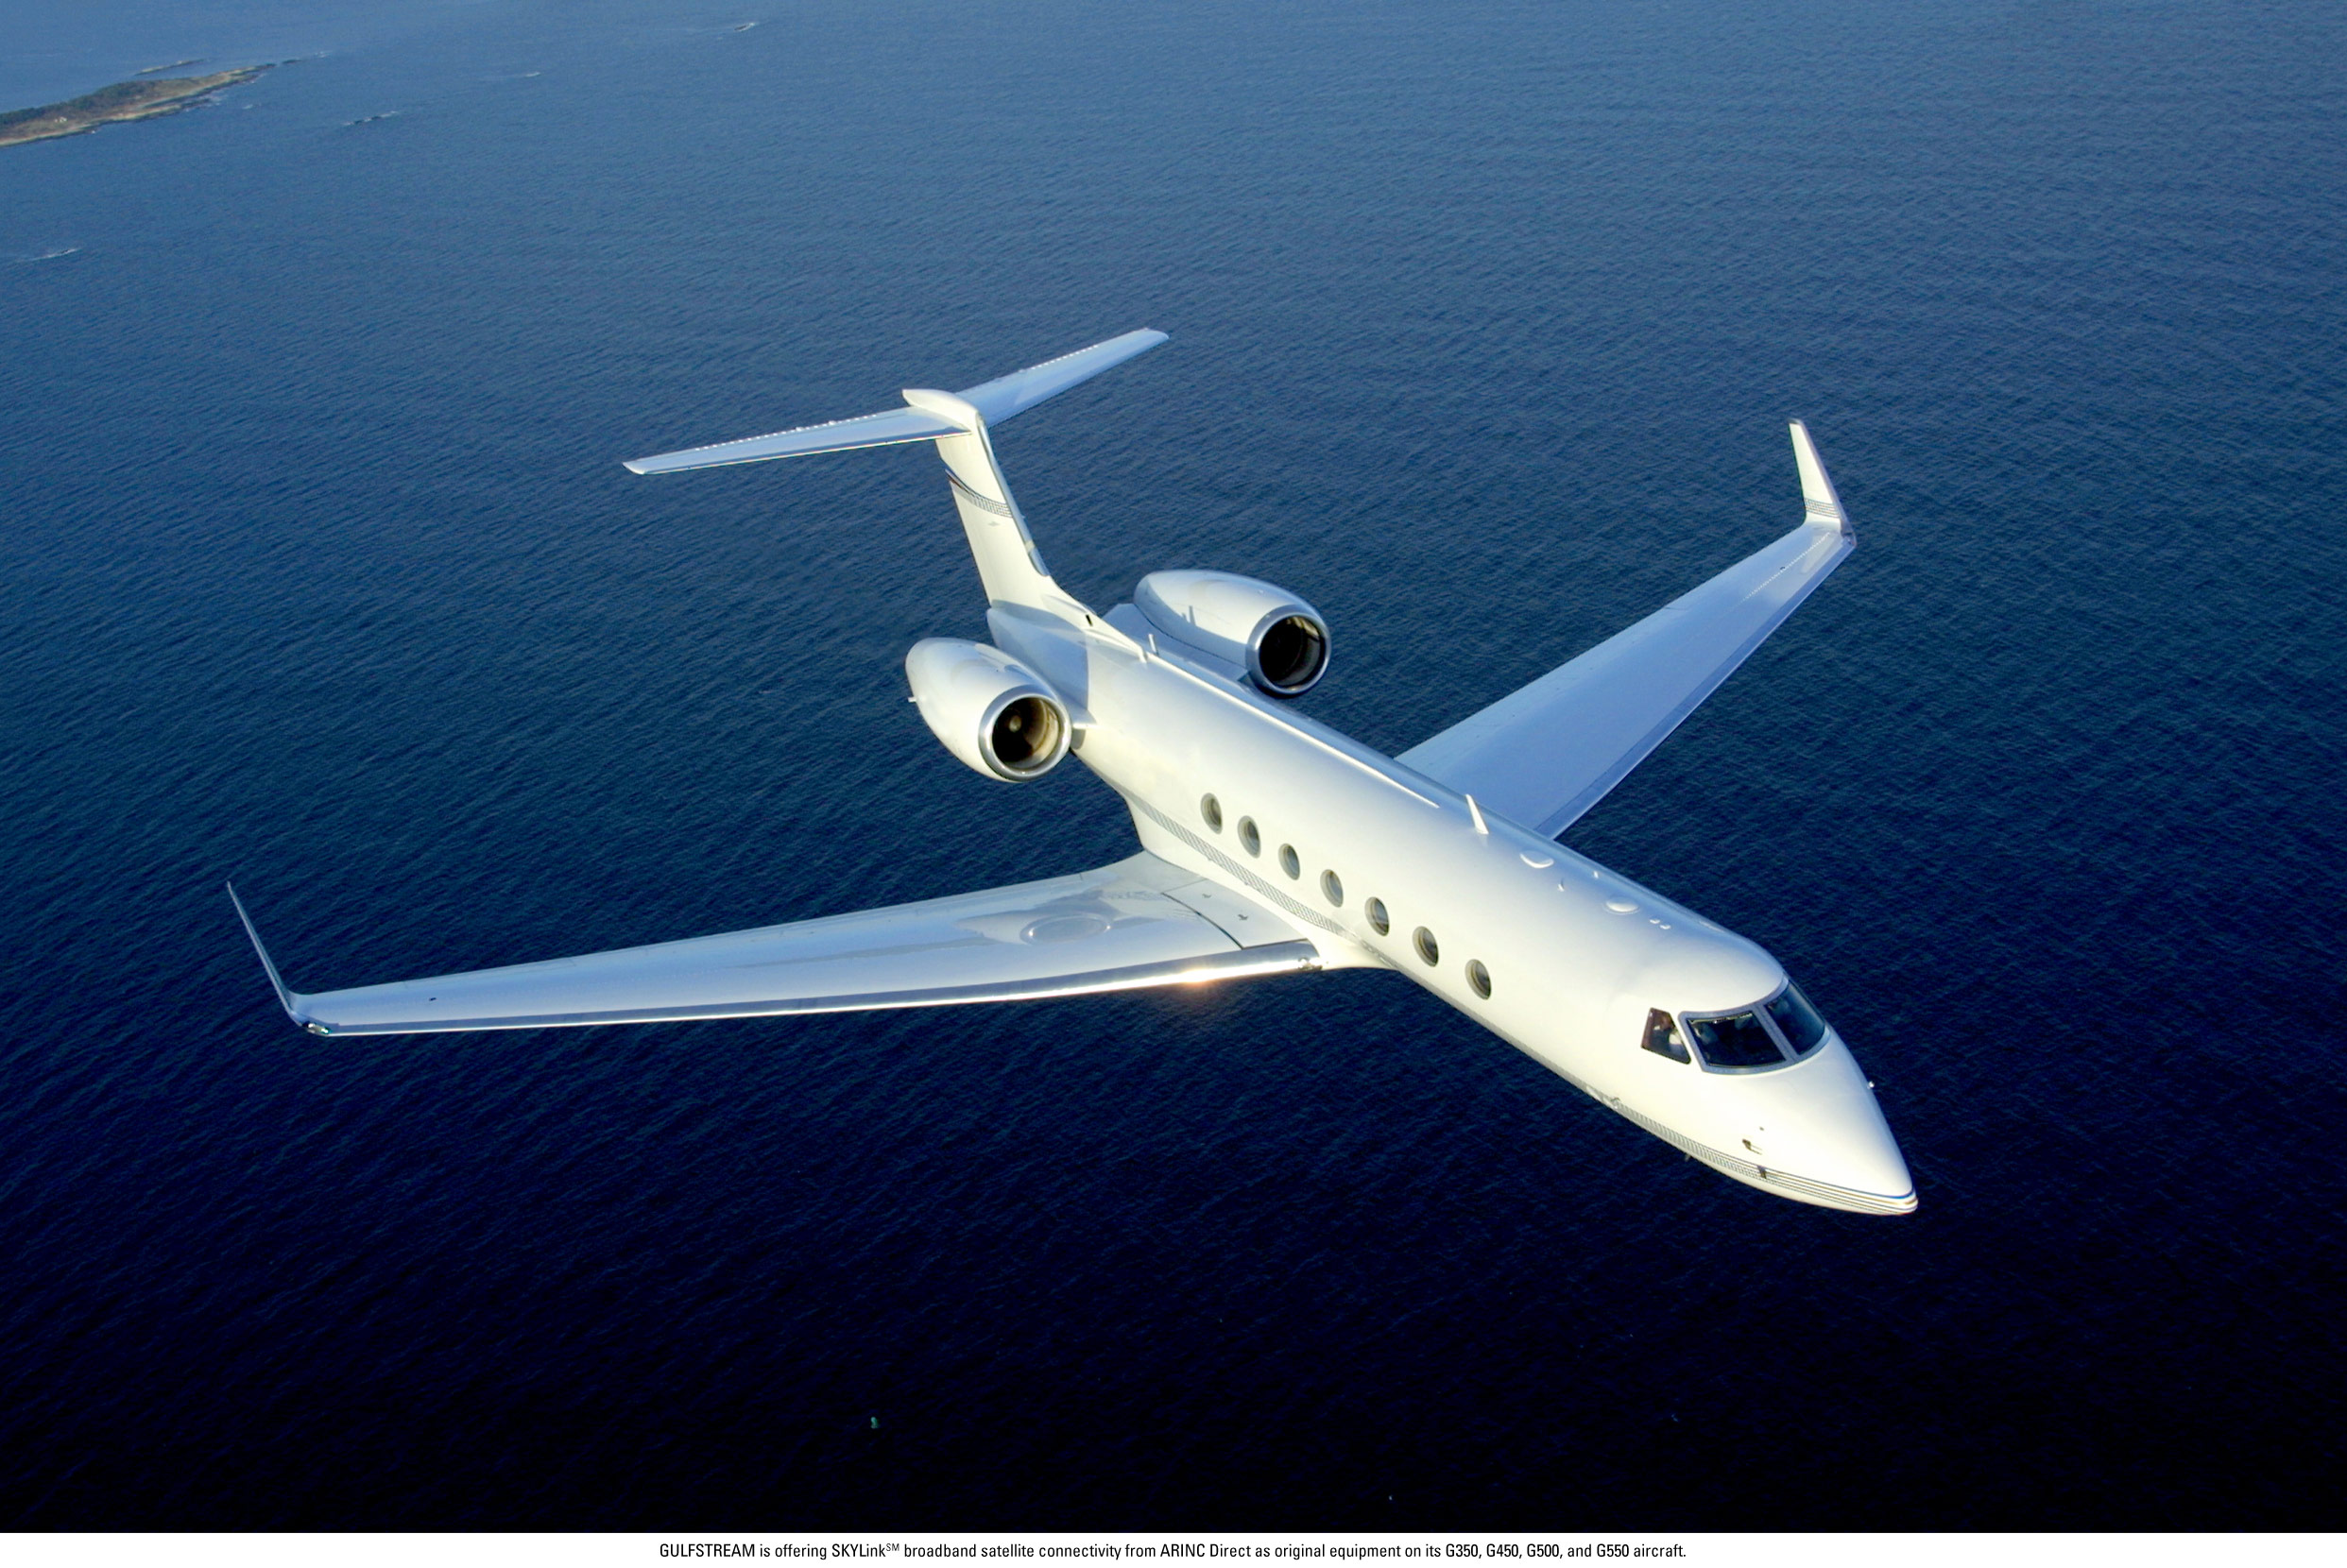 Corporate Jet Loopholes Depreciation And CommonSense Tax Policy  Internat